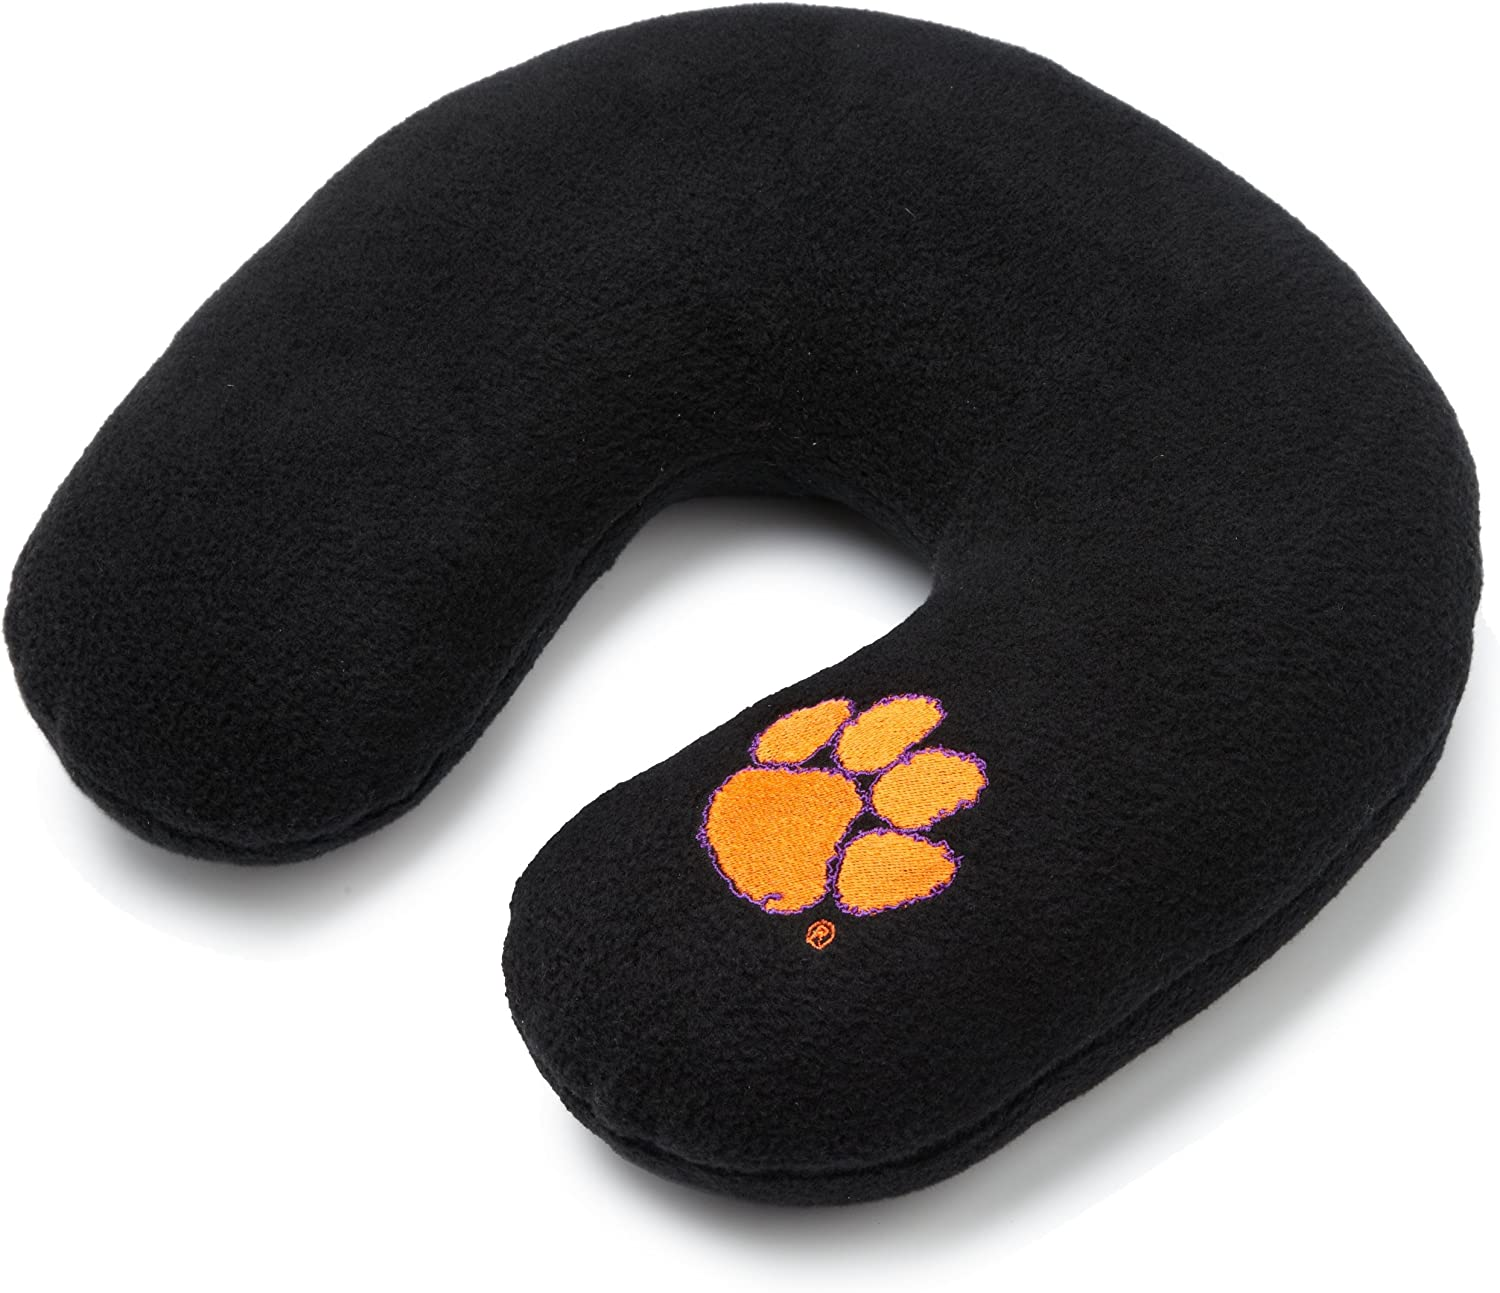 NCAA Clemson security Tigers Embroidered U-Shaped Pill favorite Travel Fleece Neck